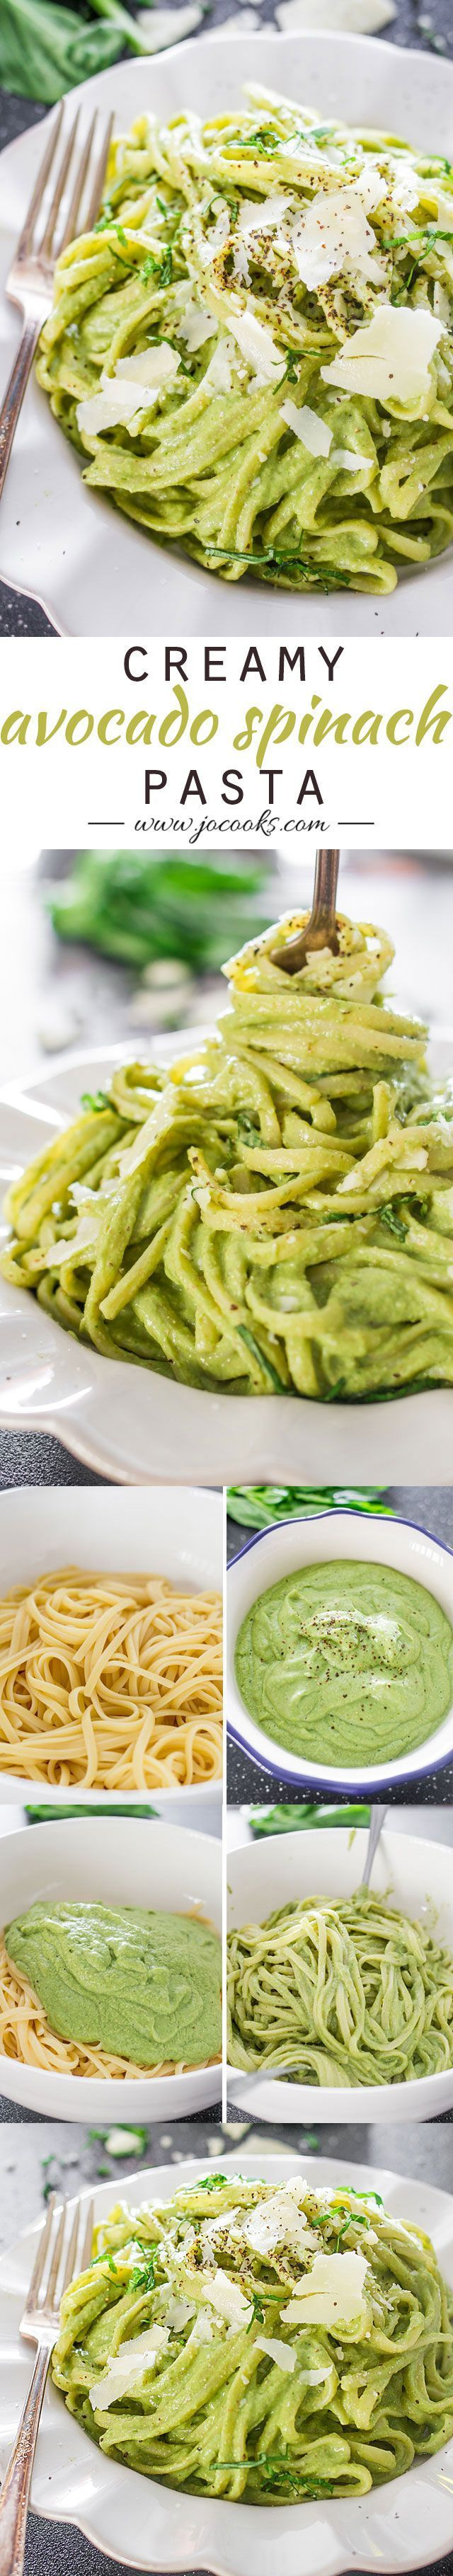 Creamy Avocado and Spinach Pasta. Can be made Paleo by using zucchini noodles #healthy #avocado #zucchini #pasta